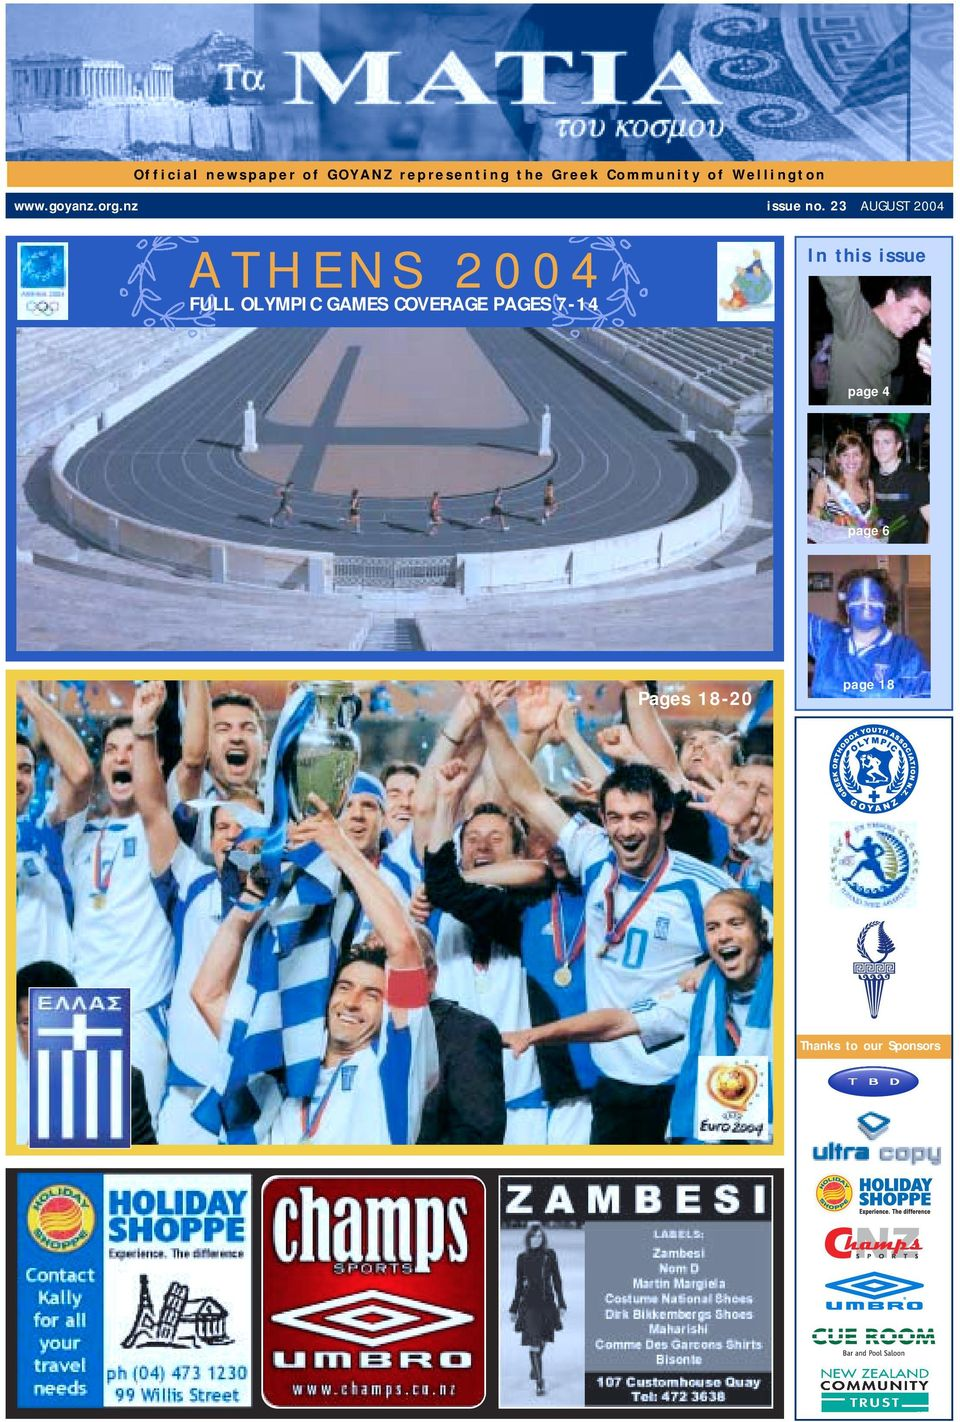 23 AUGUST 2004 ATHENS 2004 FULL OLYMPIC GAMES COVERAGE PAGES